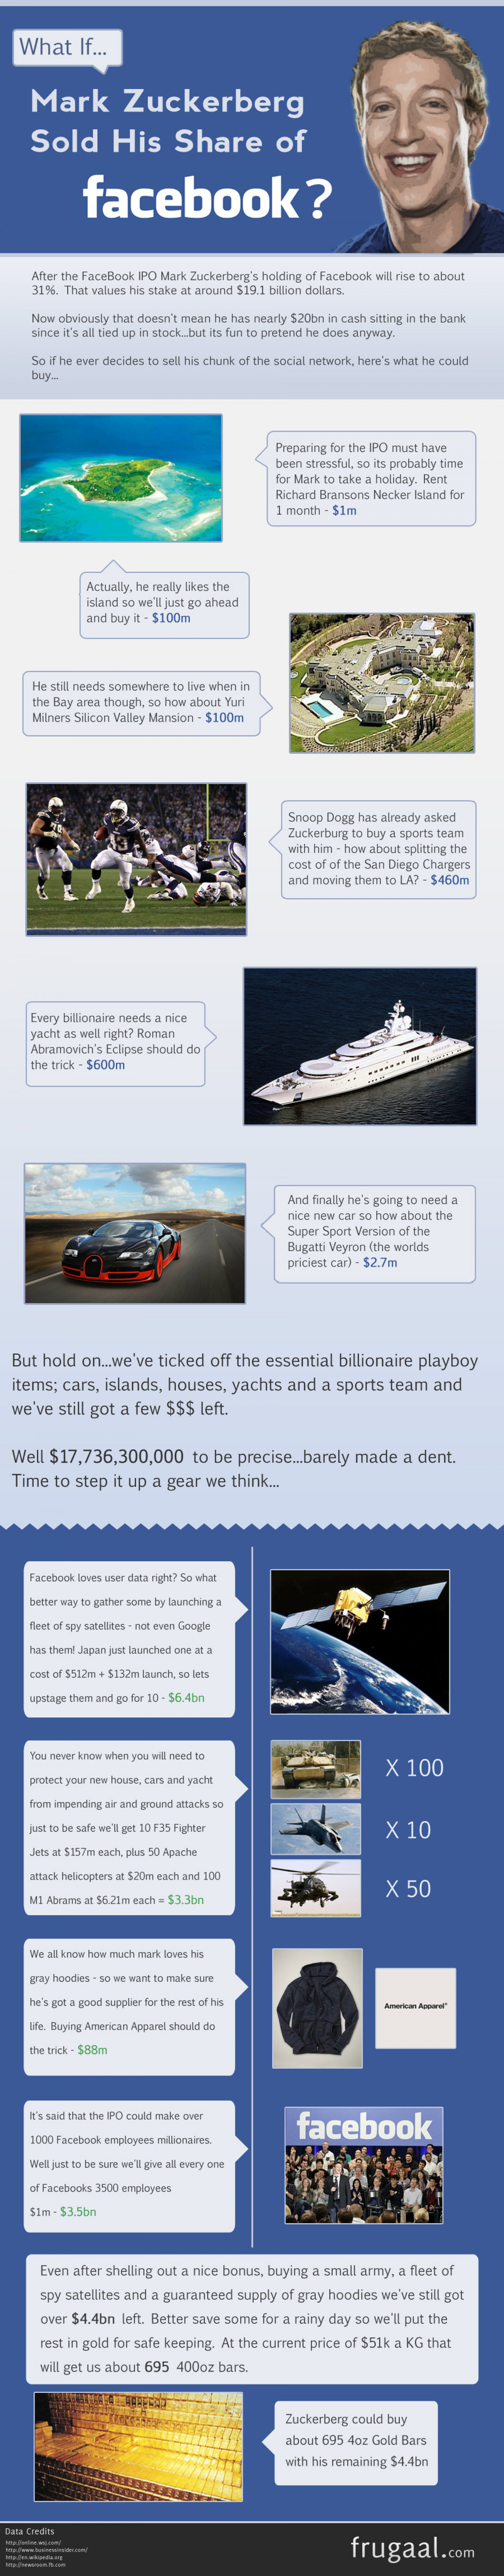 What Could Mark Zuckerberg Buy if He Sold Facebook? Infographic